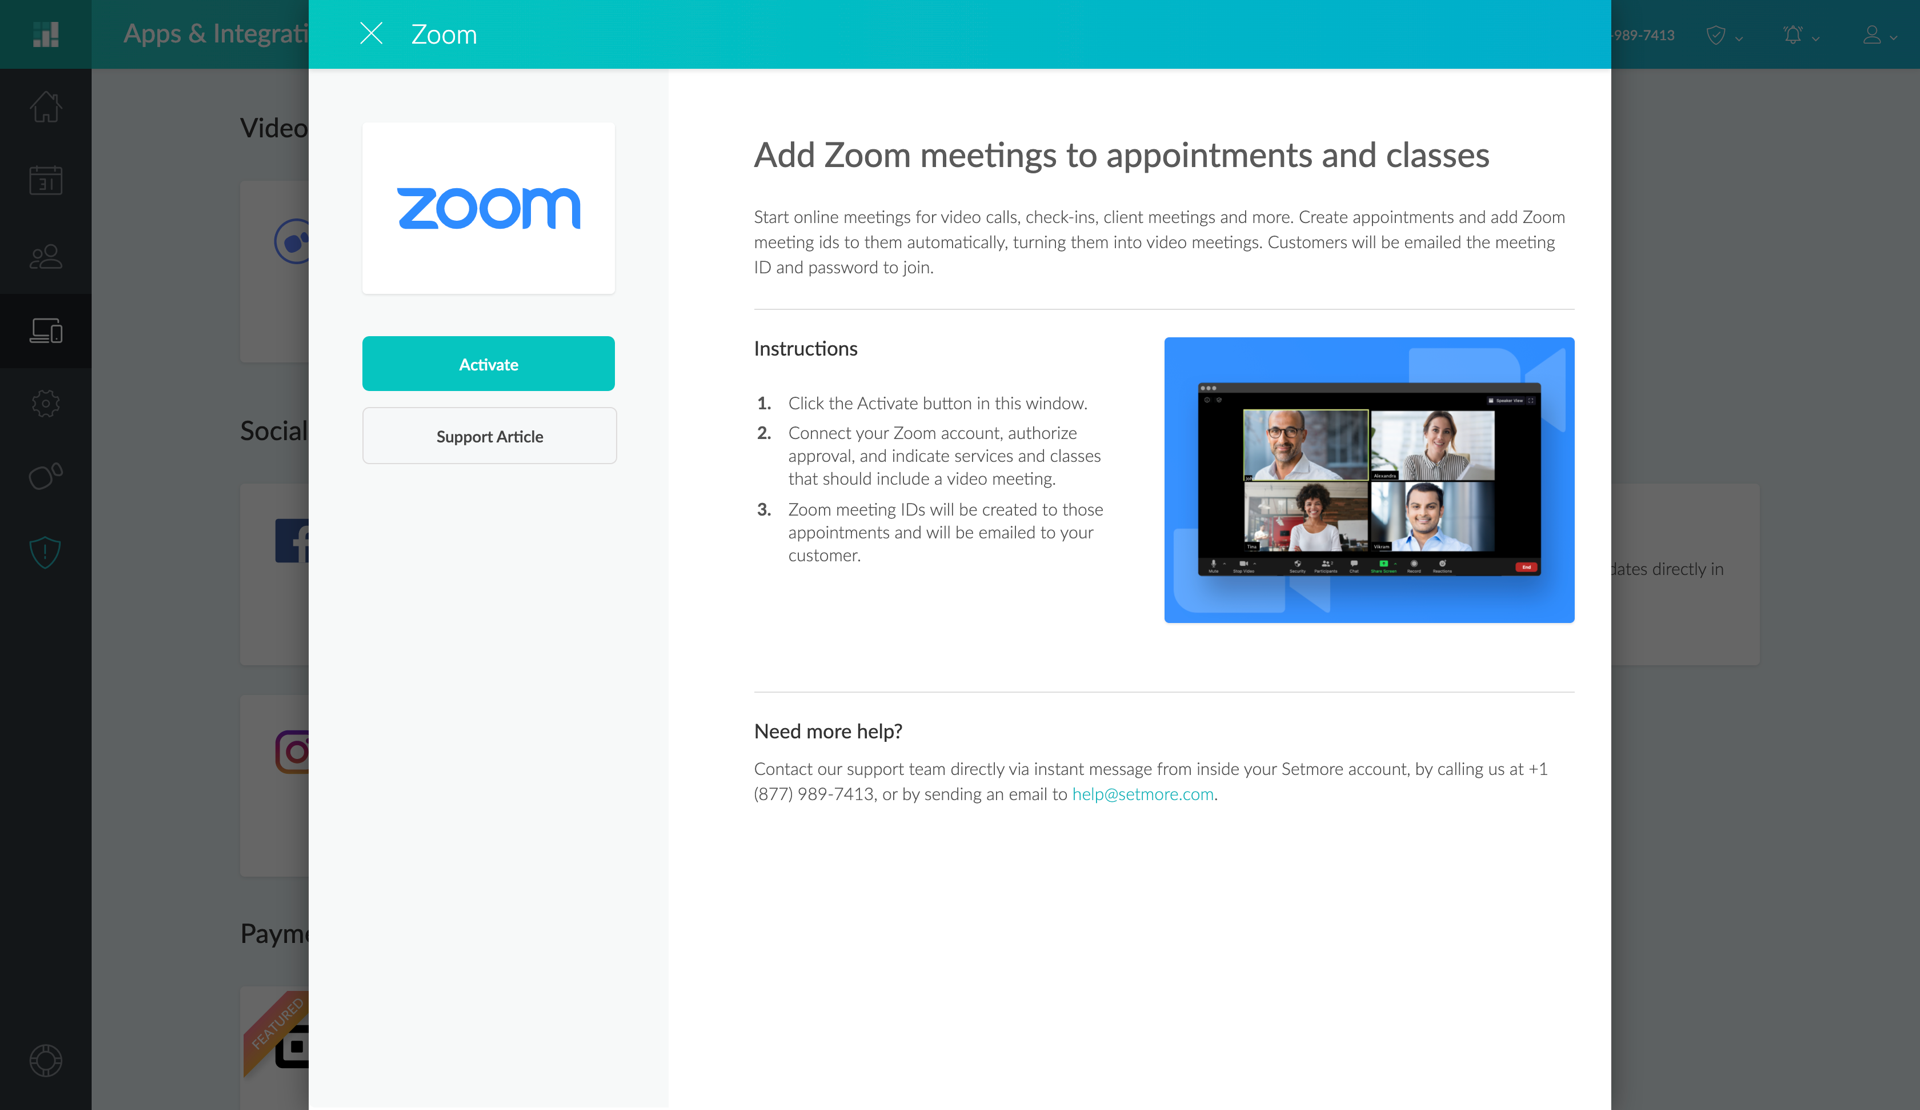 The Zoom Integration pop up window